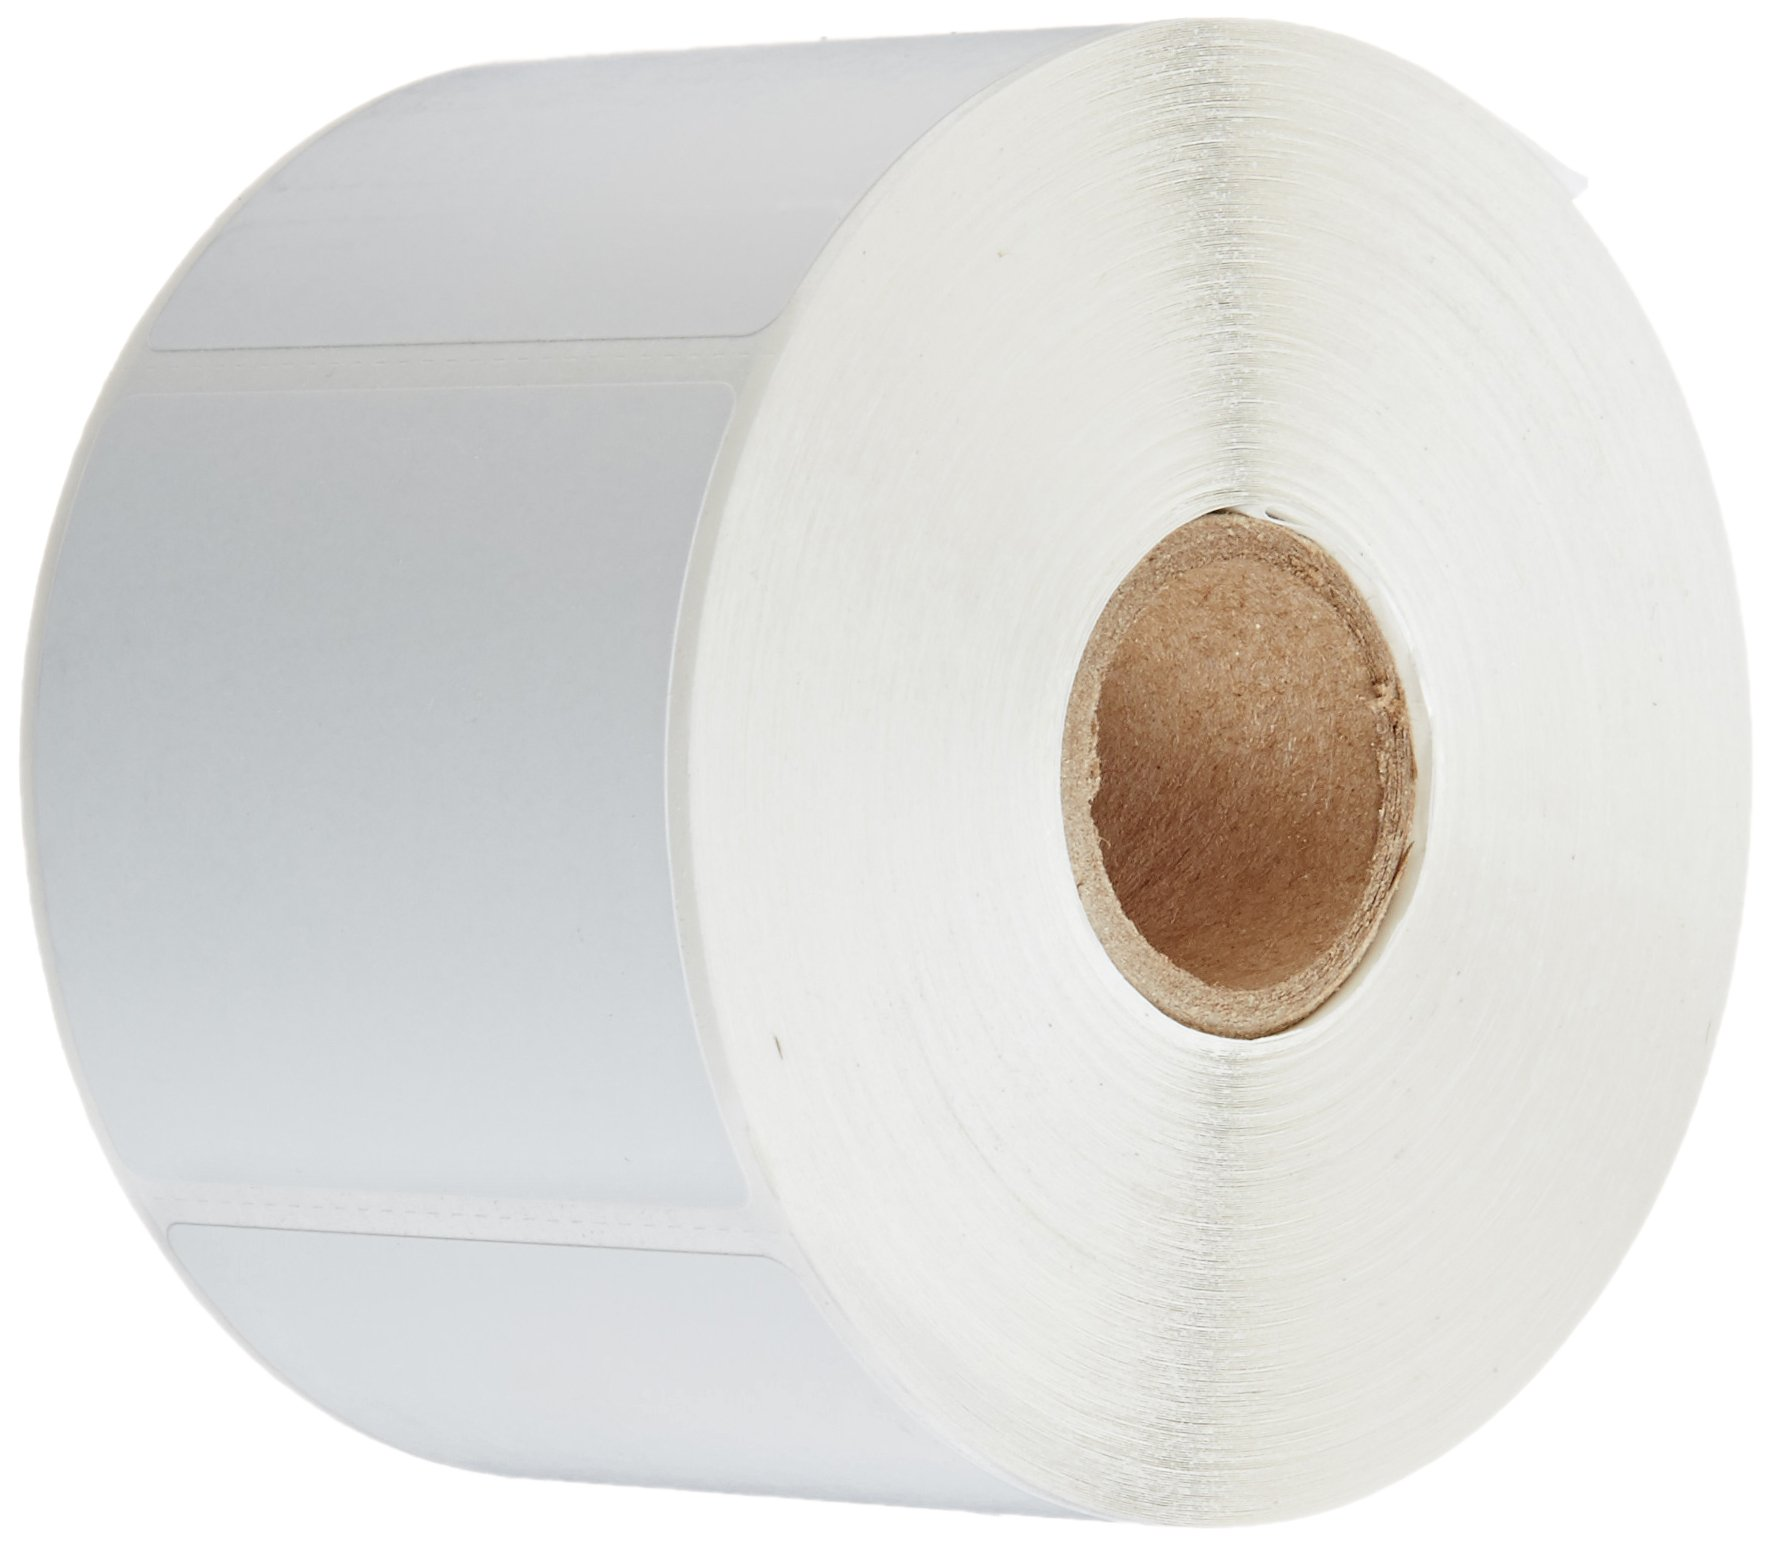 CompuLabel Direct Thermal Labels, 2 1/4 x 2 Inches, White, Roll, Permanent Adhesive, Perforations Between Labels, 700 Per Roll, 12 Rolls Per Carton (530605) by Compulabel